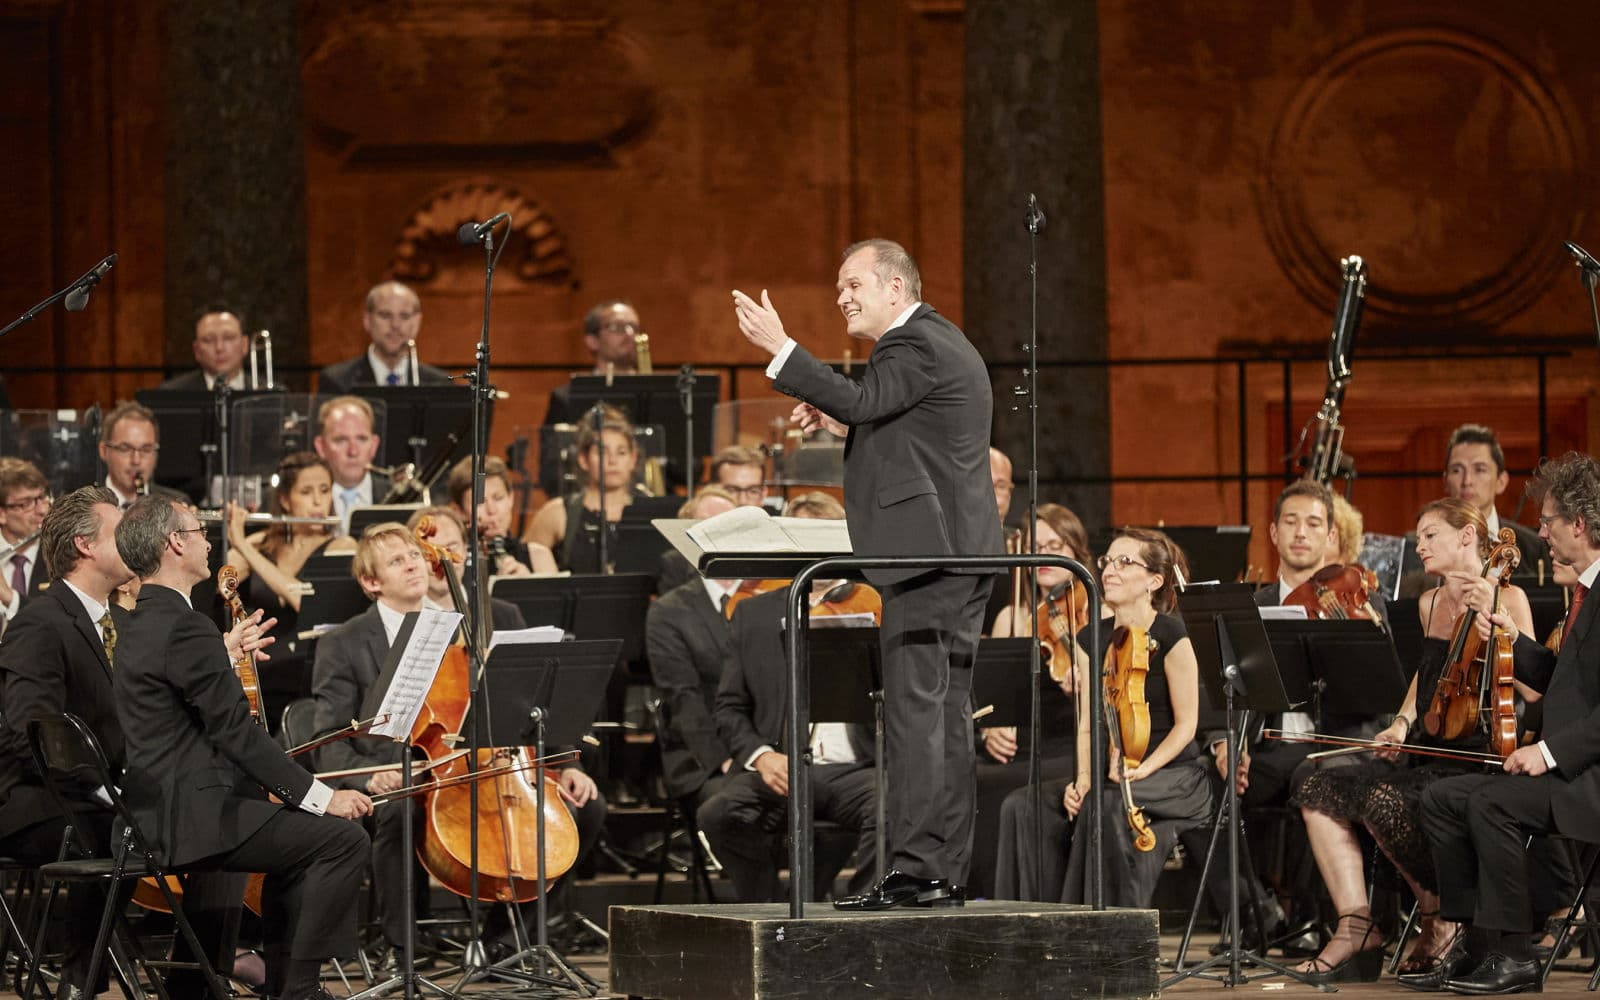 Orchestra plays Beethoven for free, manager bursts into tears